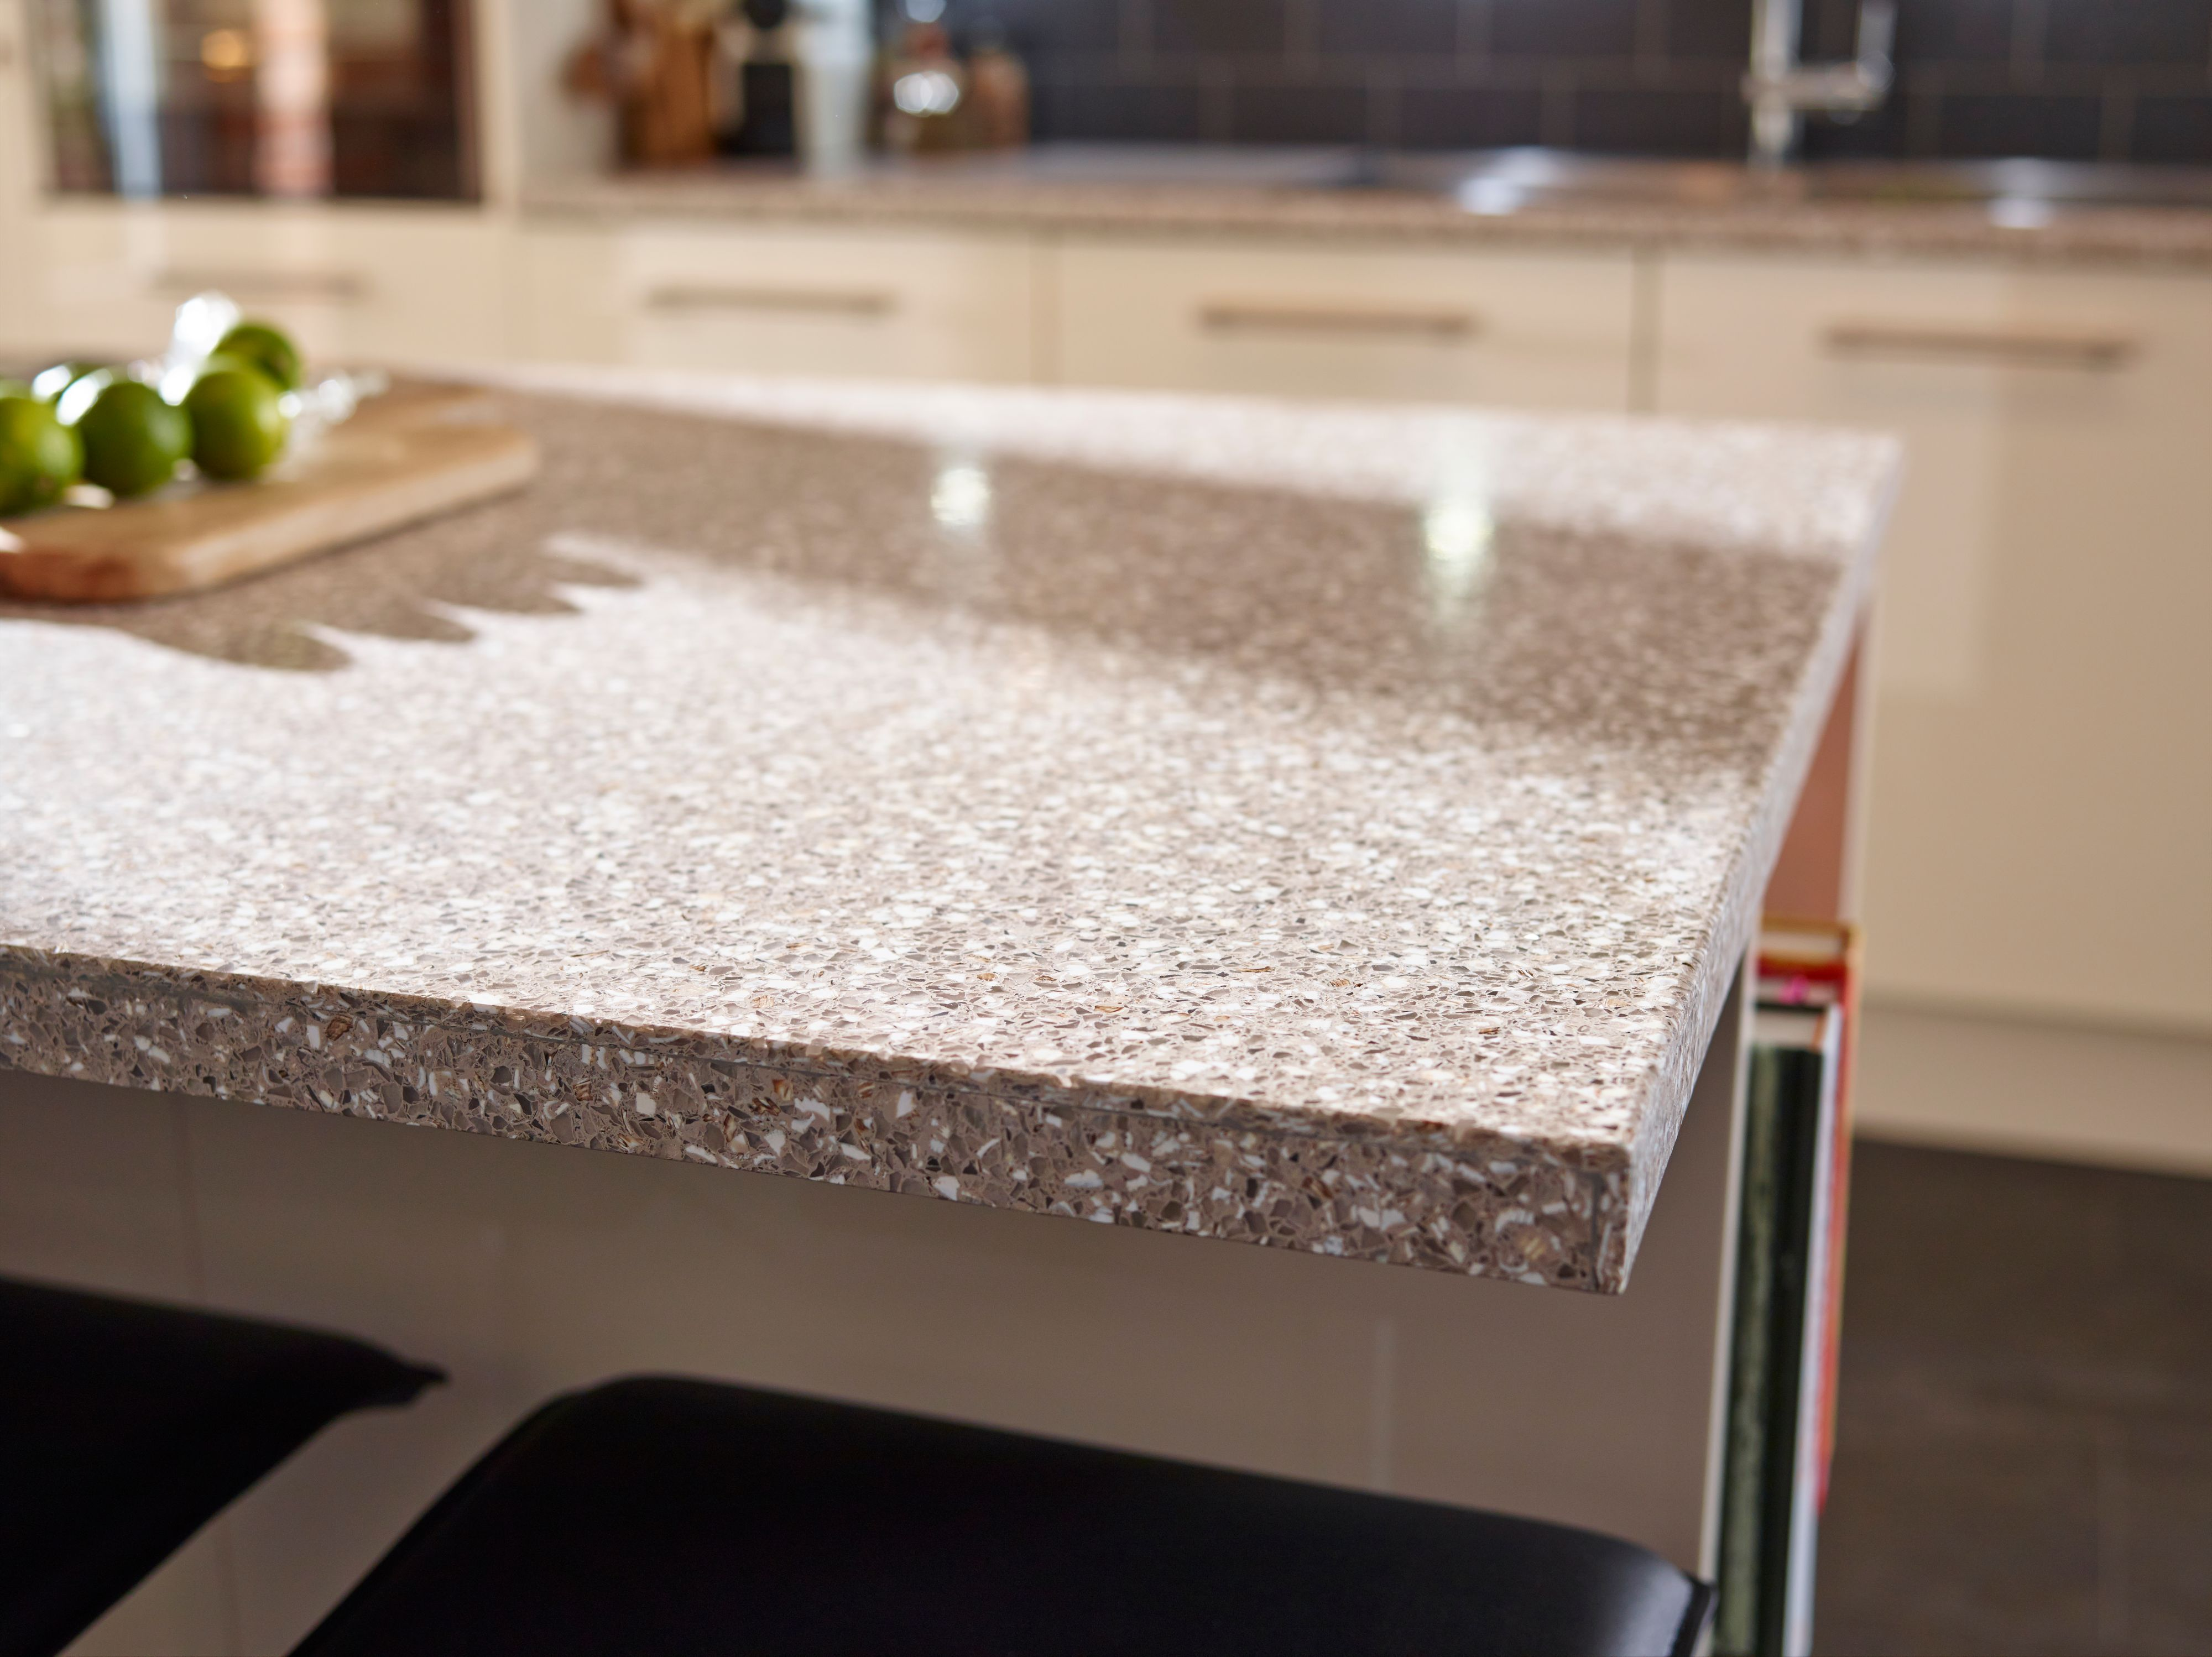 A kitchen worktop for every kitchen to make it complete and wholesome!